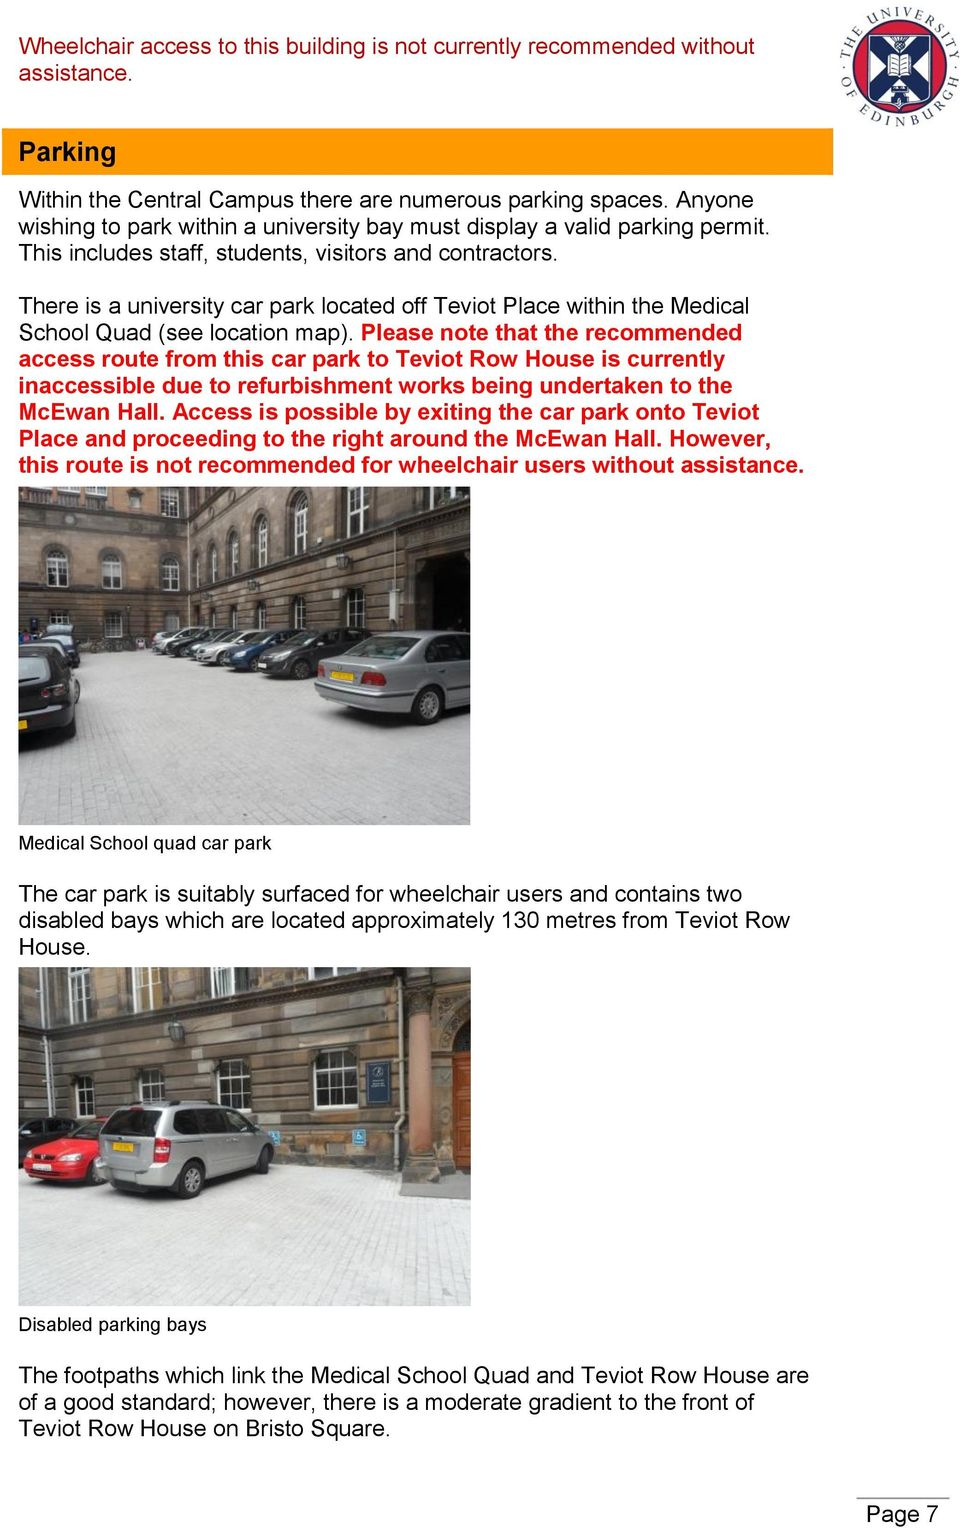 Please note that the recommended access route from this car park to Teviot Row House is currently inaccessible due to refurbishment works being undertaken to the McEwan Hall.